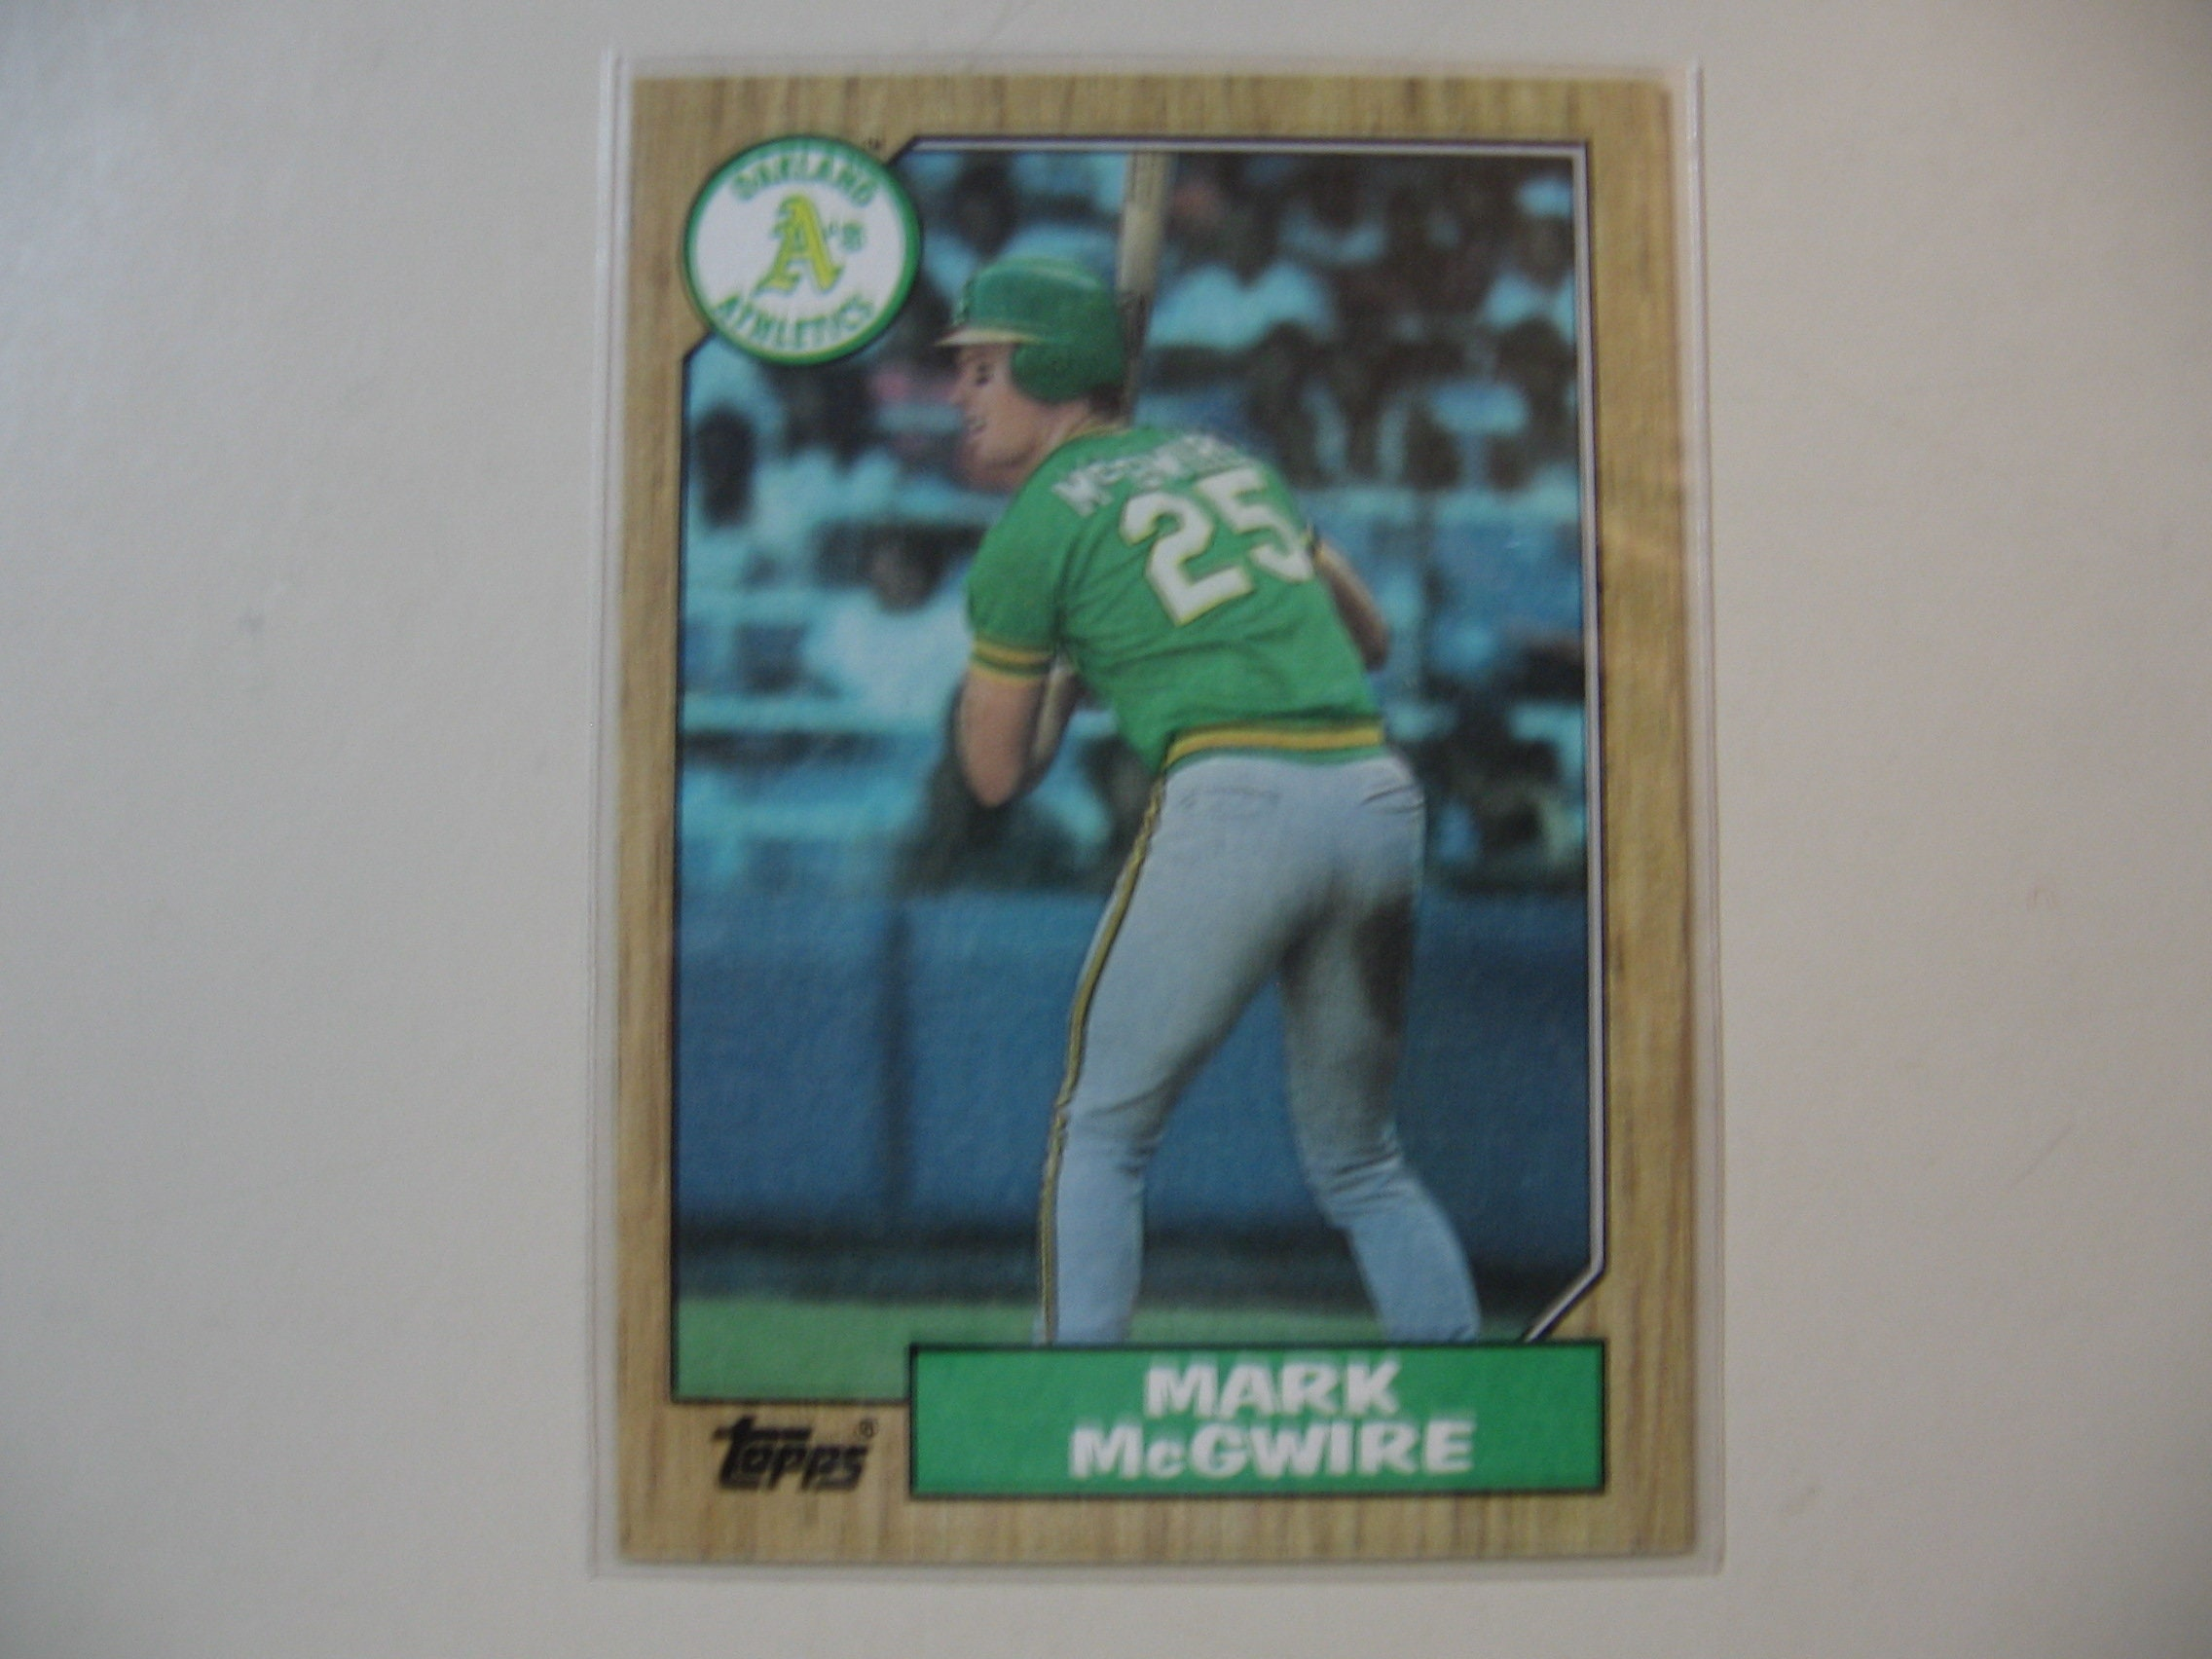 1987 Topps Mark Mcgwire Baseball Card